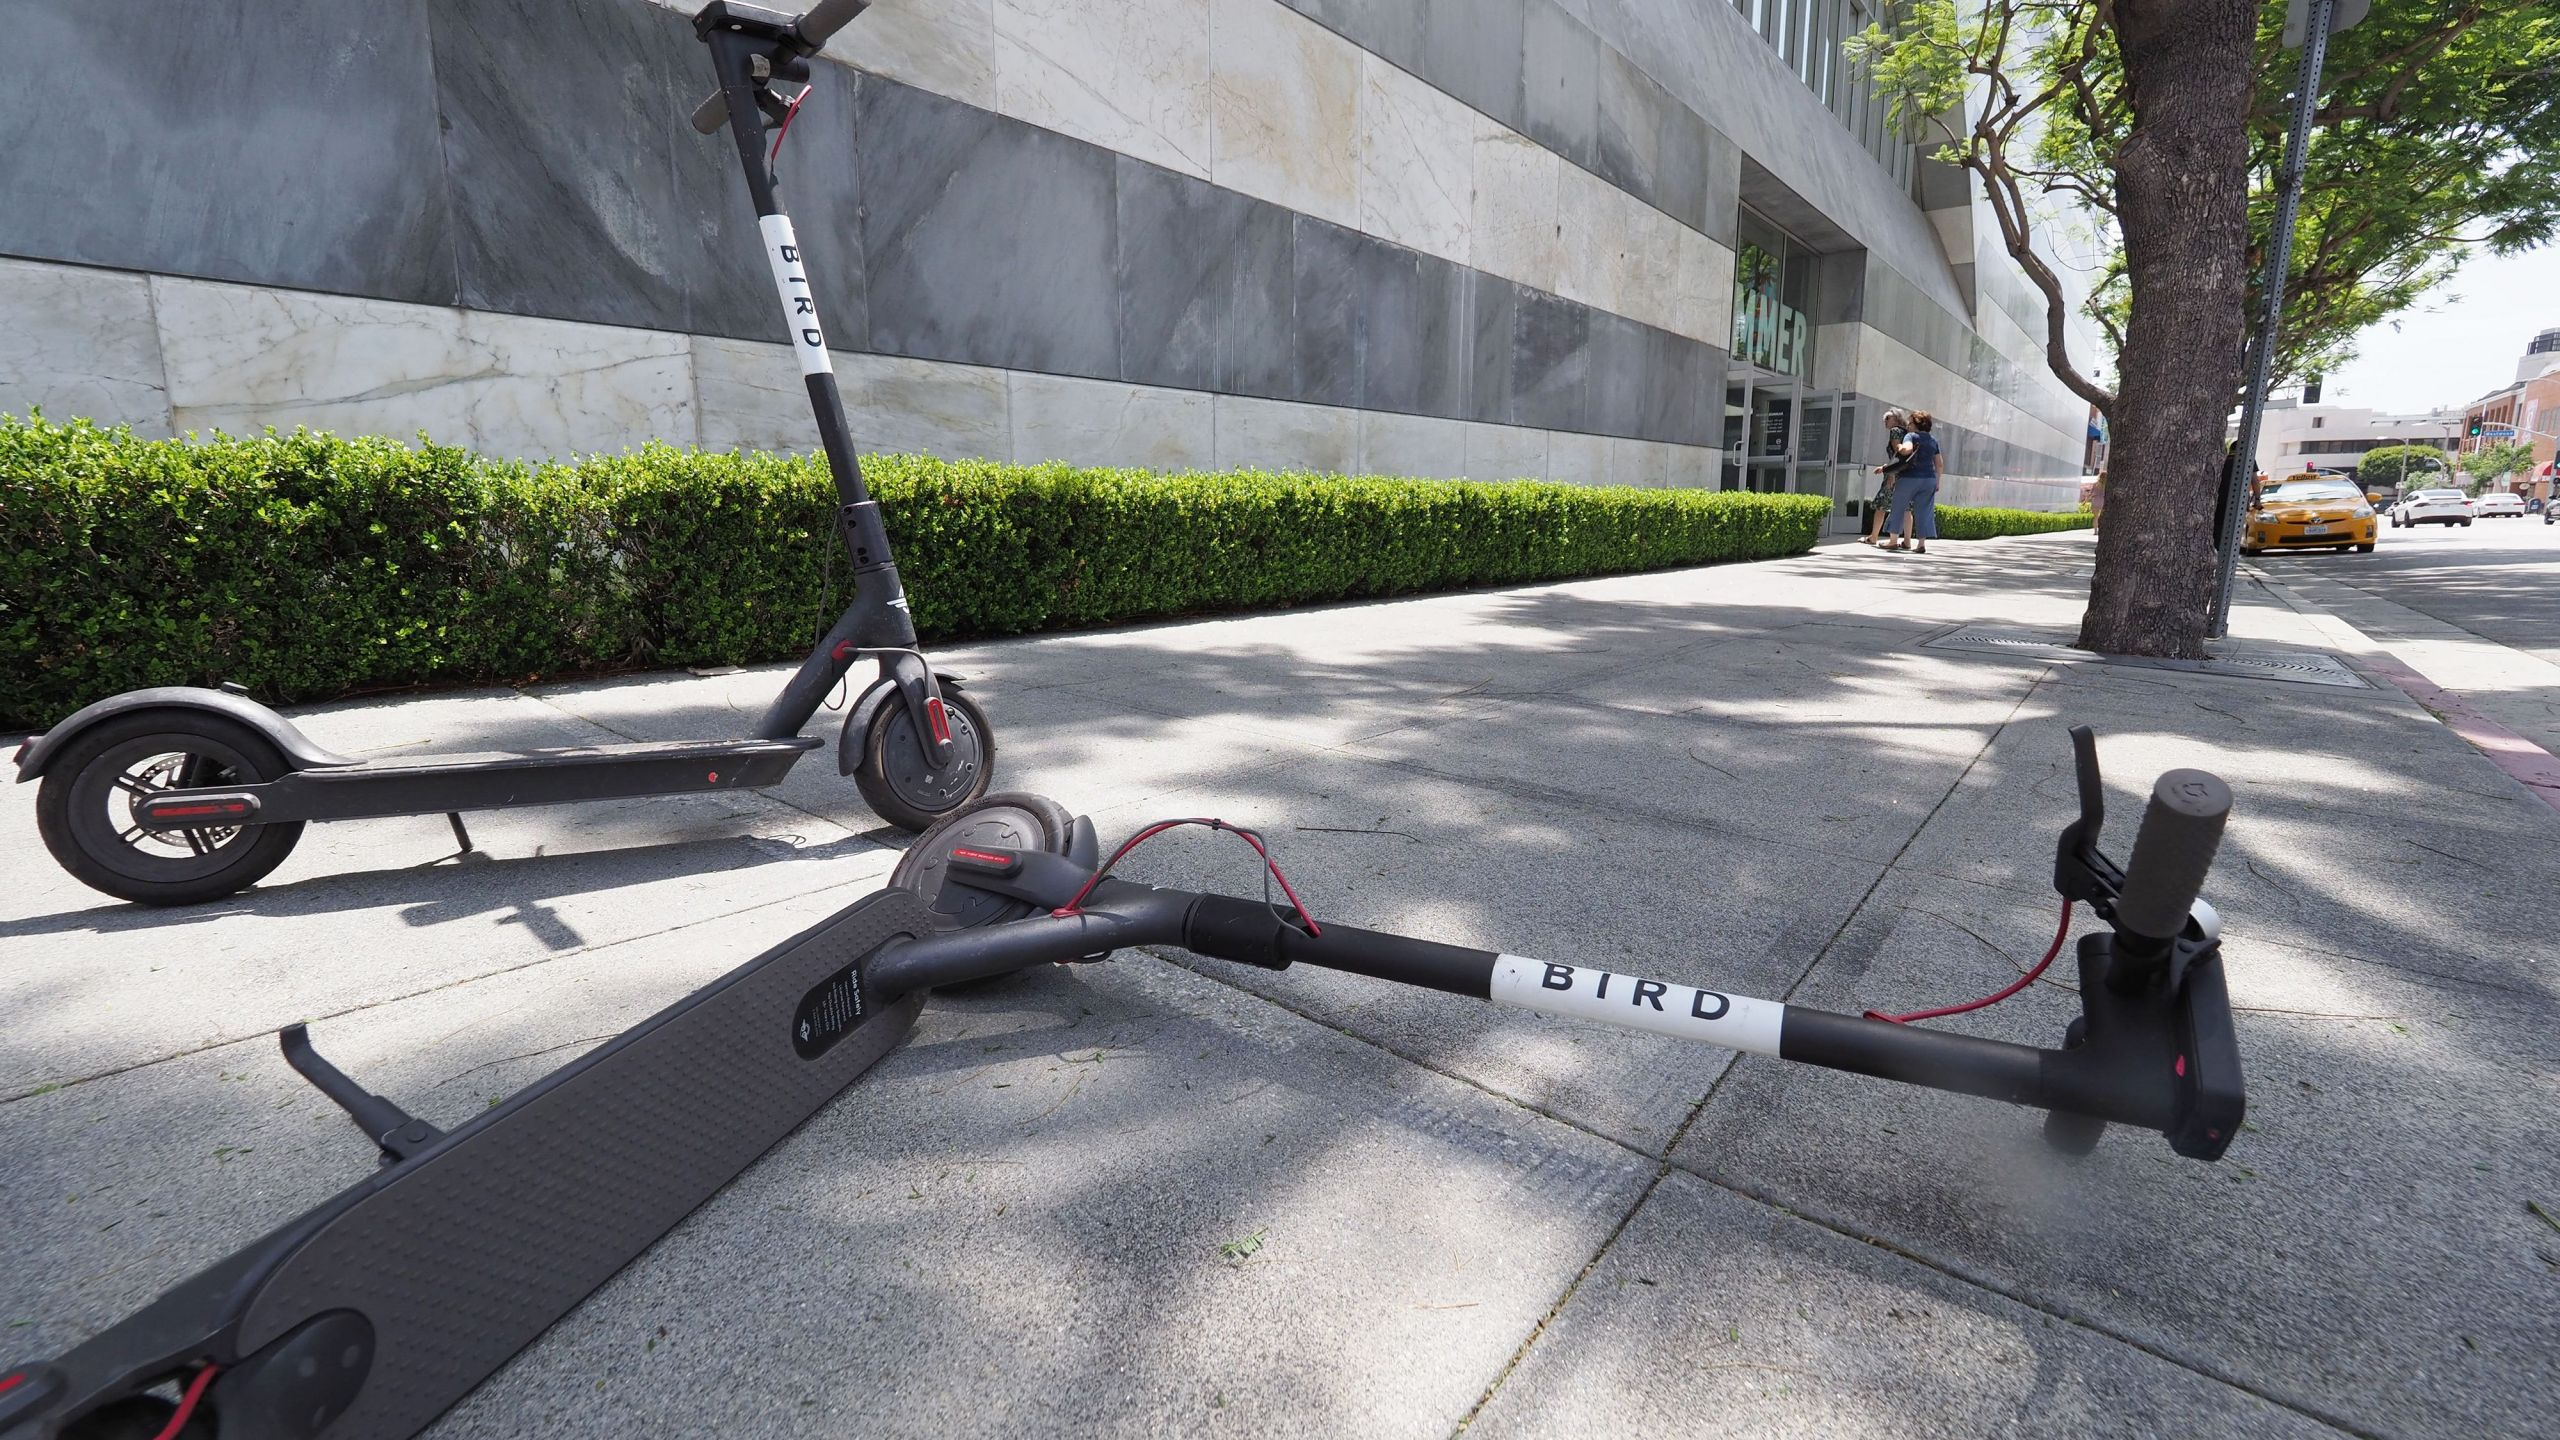 A pedestrian walks past two Bird dockless scooters, one laying on its side, in the middle of a sidewalk in Westwood on July 10, 2018. (Credit: ROBYN BECK/AFP/Getty Images)